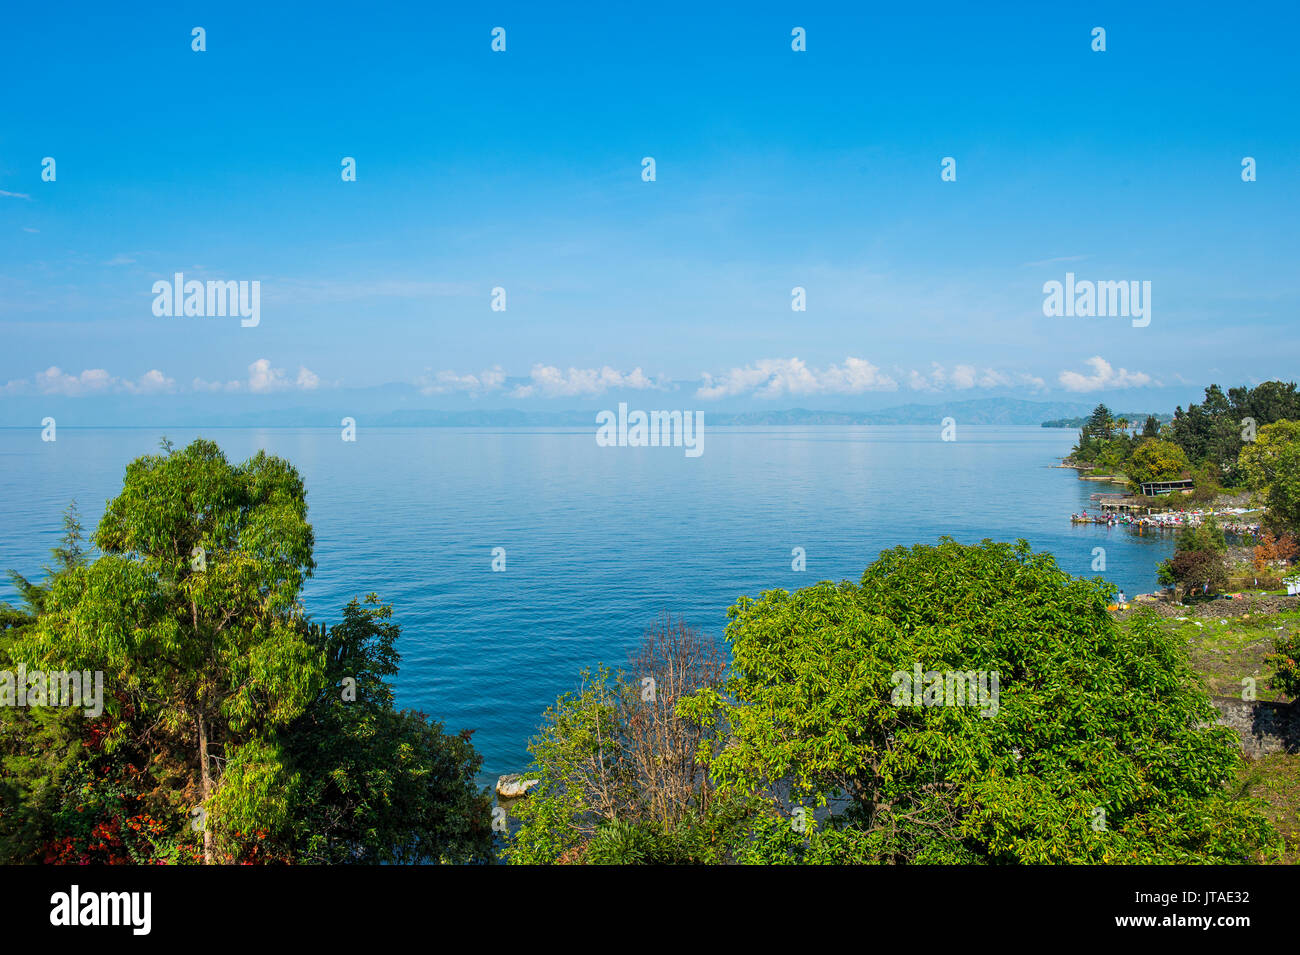 View over Lake Kivu, Goma, Democratic Republic of the Congo, Africa - Stock Image